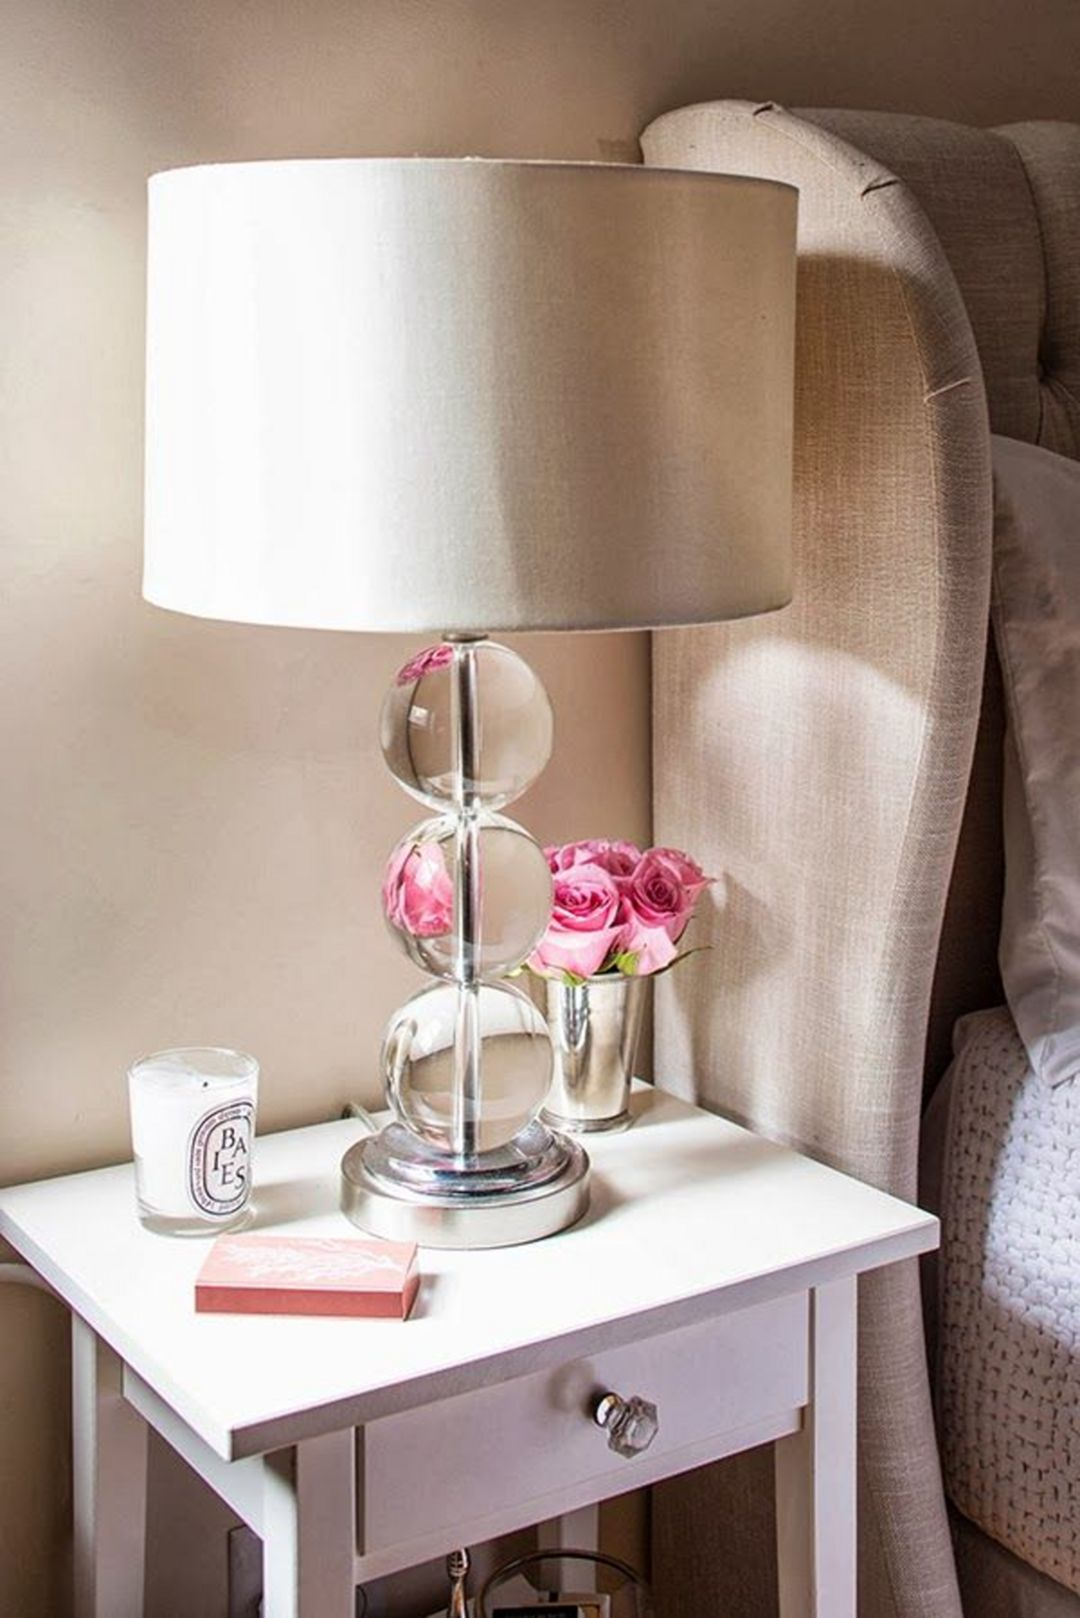 12 Awesome Bedside Table Lamps Ideas To Light Up Your Sleeping